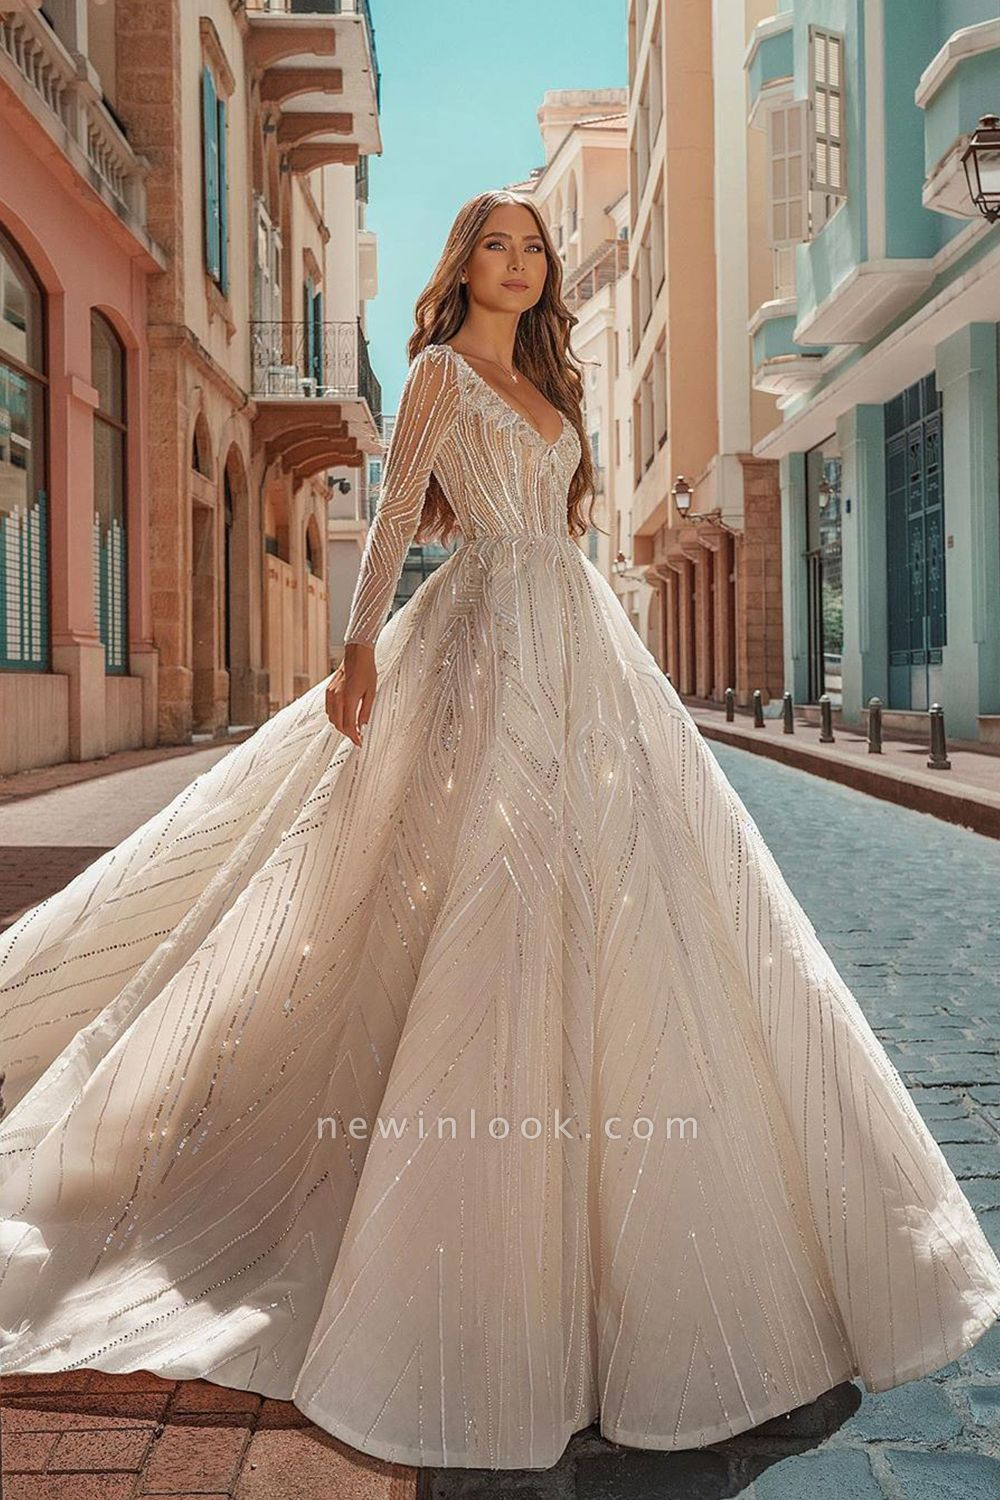 Crystal Beads Long Sleeve Backless Ball Gown Wedding Dresses